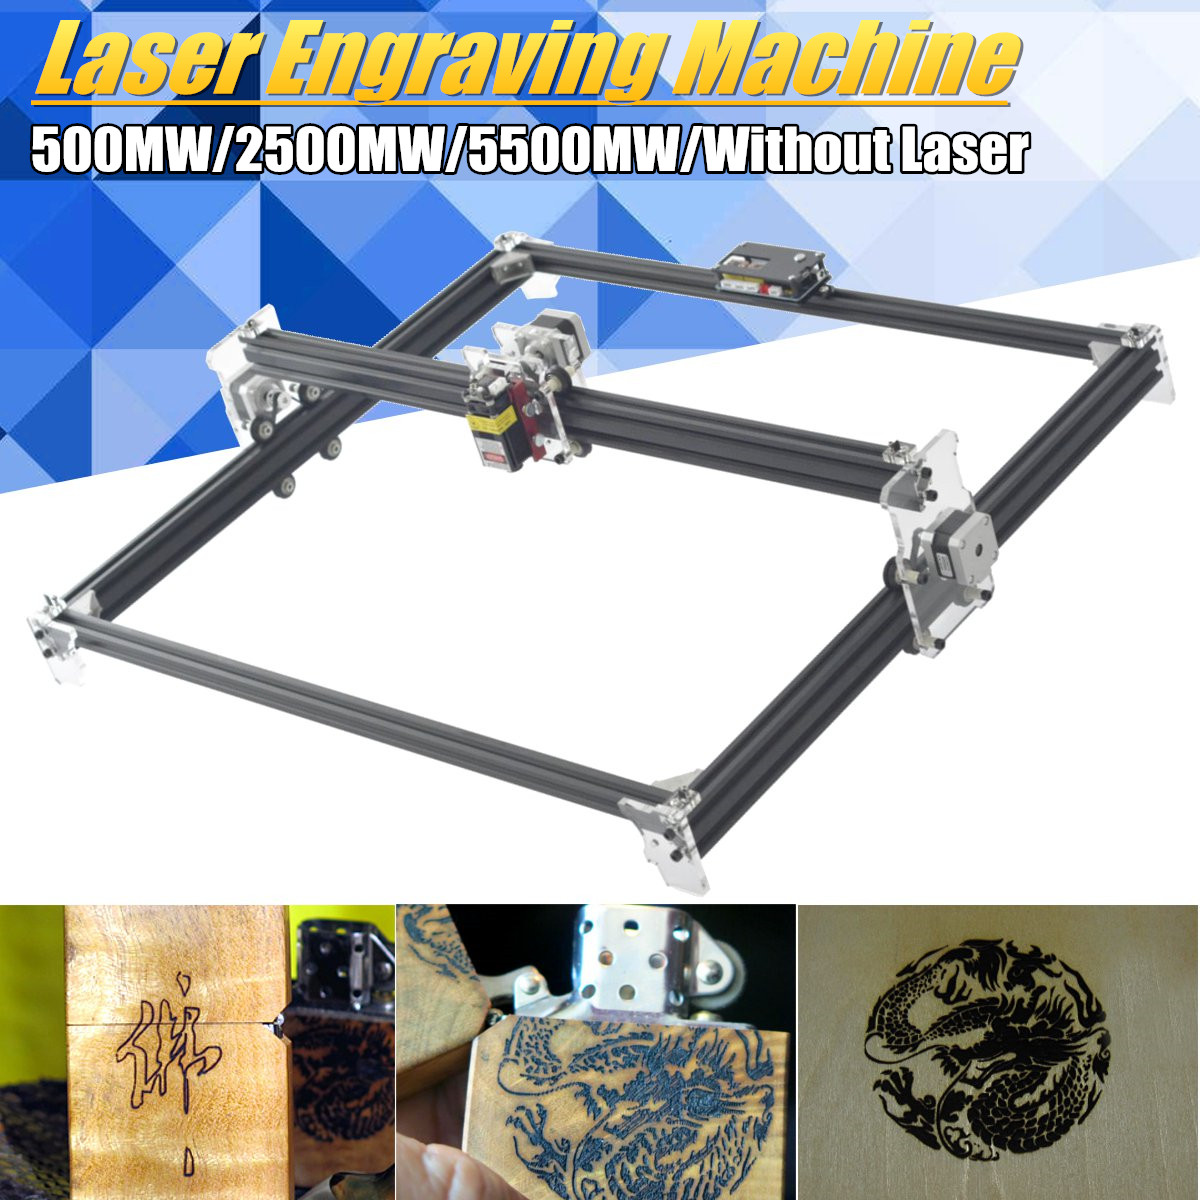 DIY Laser Engraver Machine DVP6550 CNC Laser Engraving Machine Wood Router DIY Engraver Desktop Wood Router/Cutter/Printer pink dandelion design кожа pu откидной крышки кошелек для карты держатель для samsung j5prime